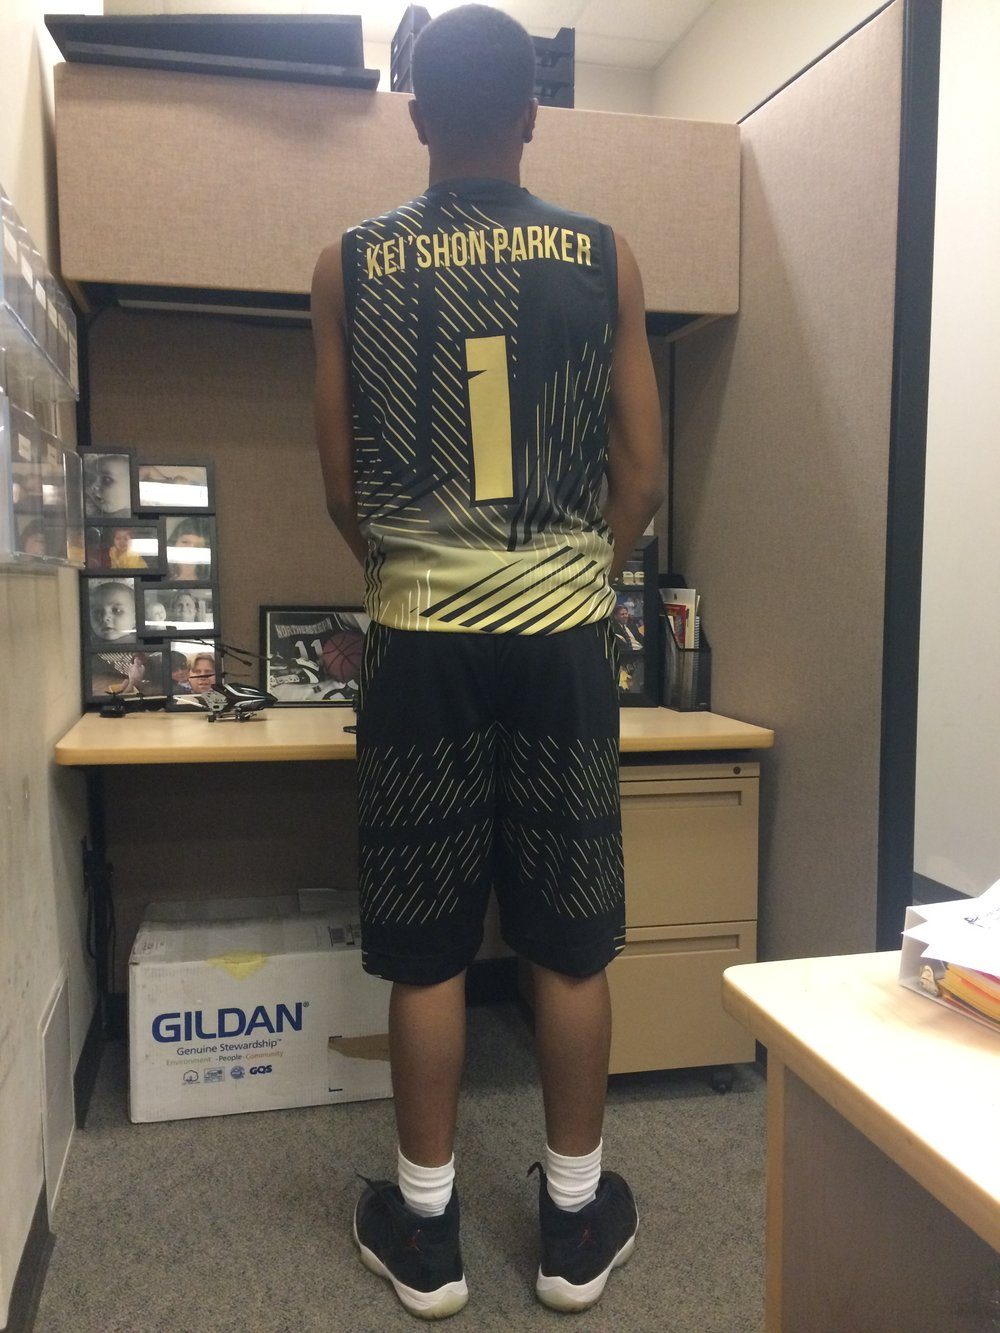 Vegas Gold Black and White Baseball Uniforms, Jersey and Shorts